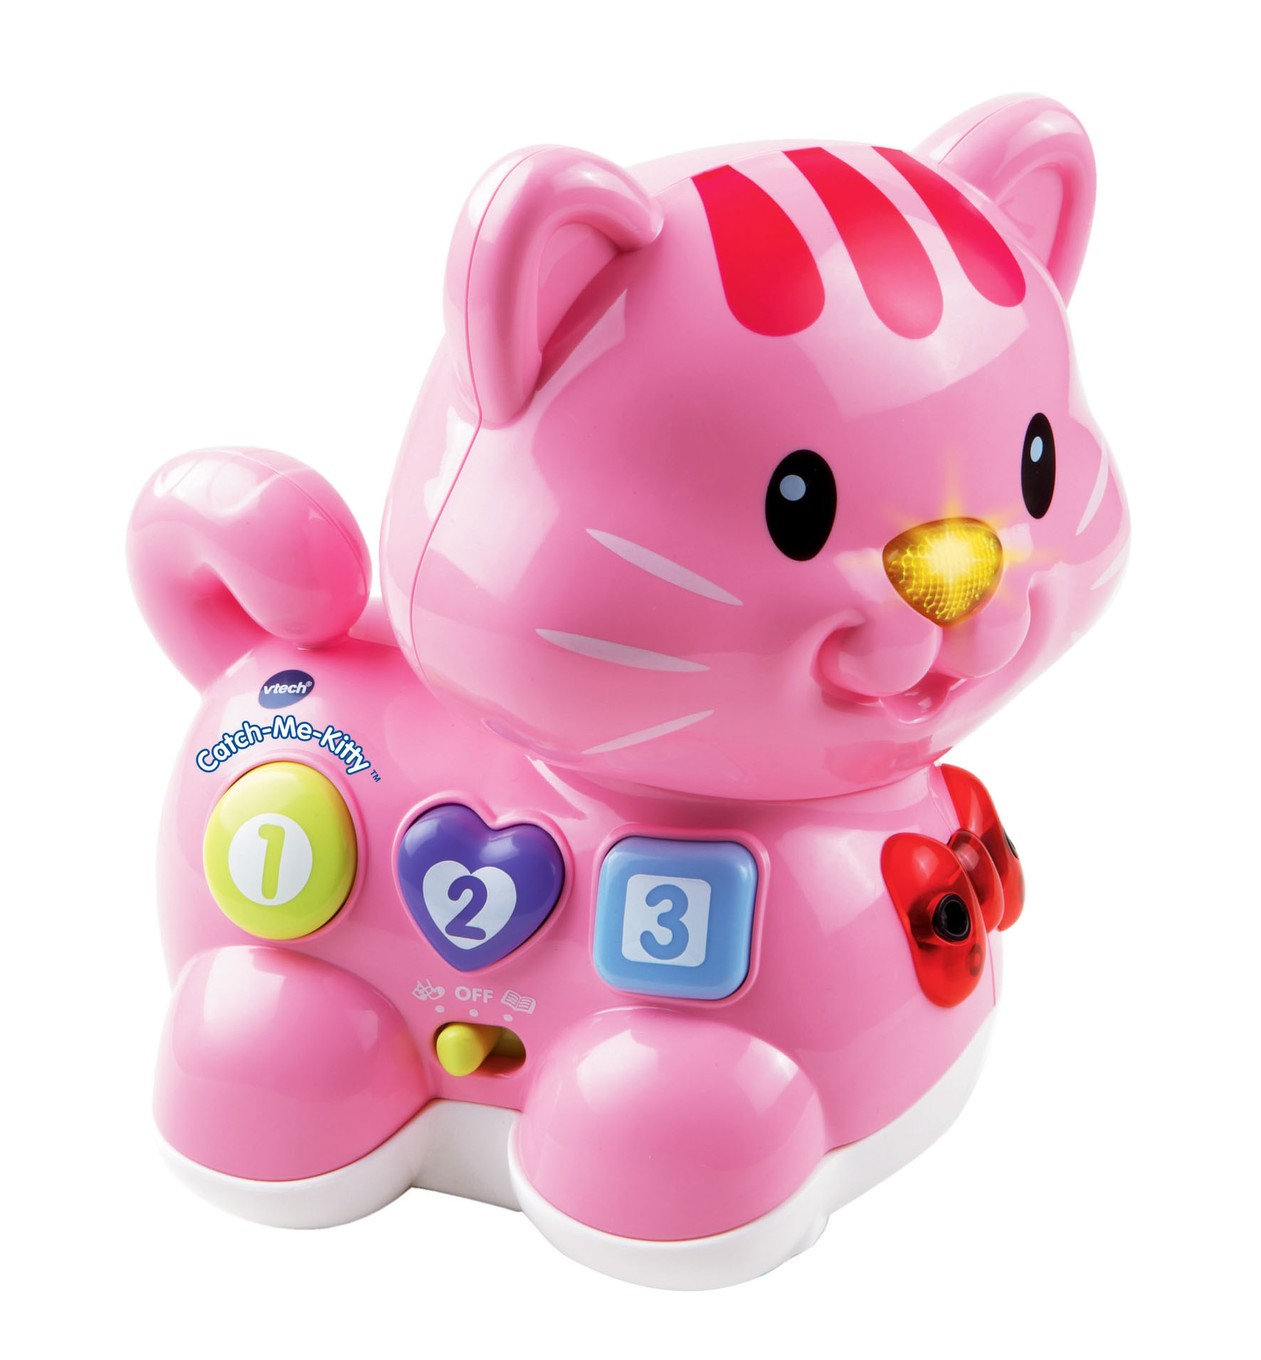 Drum Toy For 1 Year Olds : Catch me kitty interactive infant toddler toy